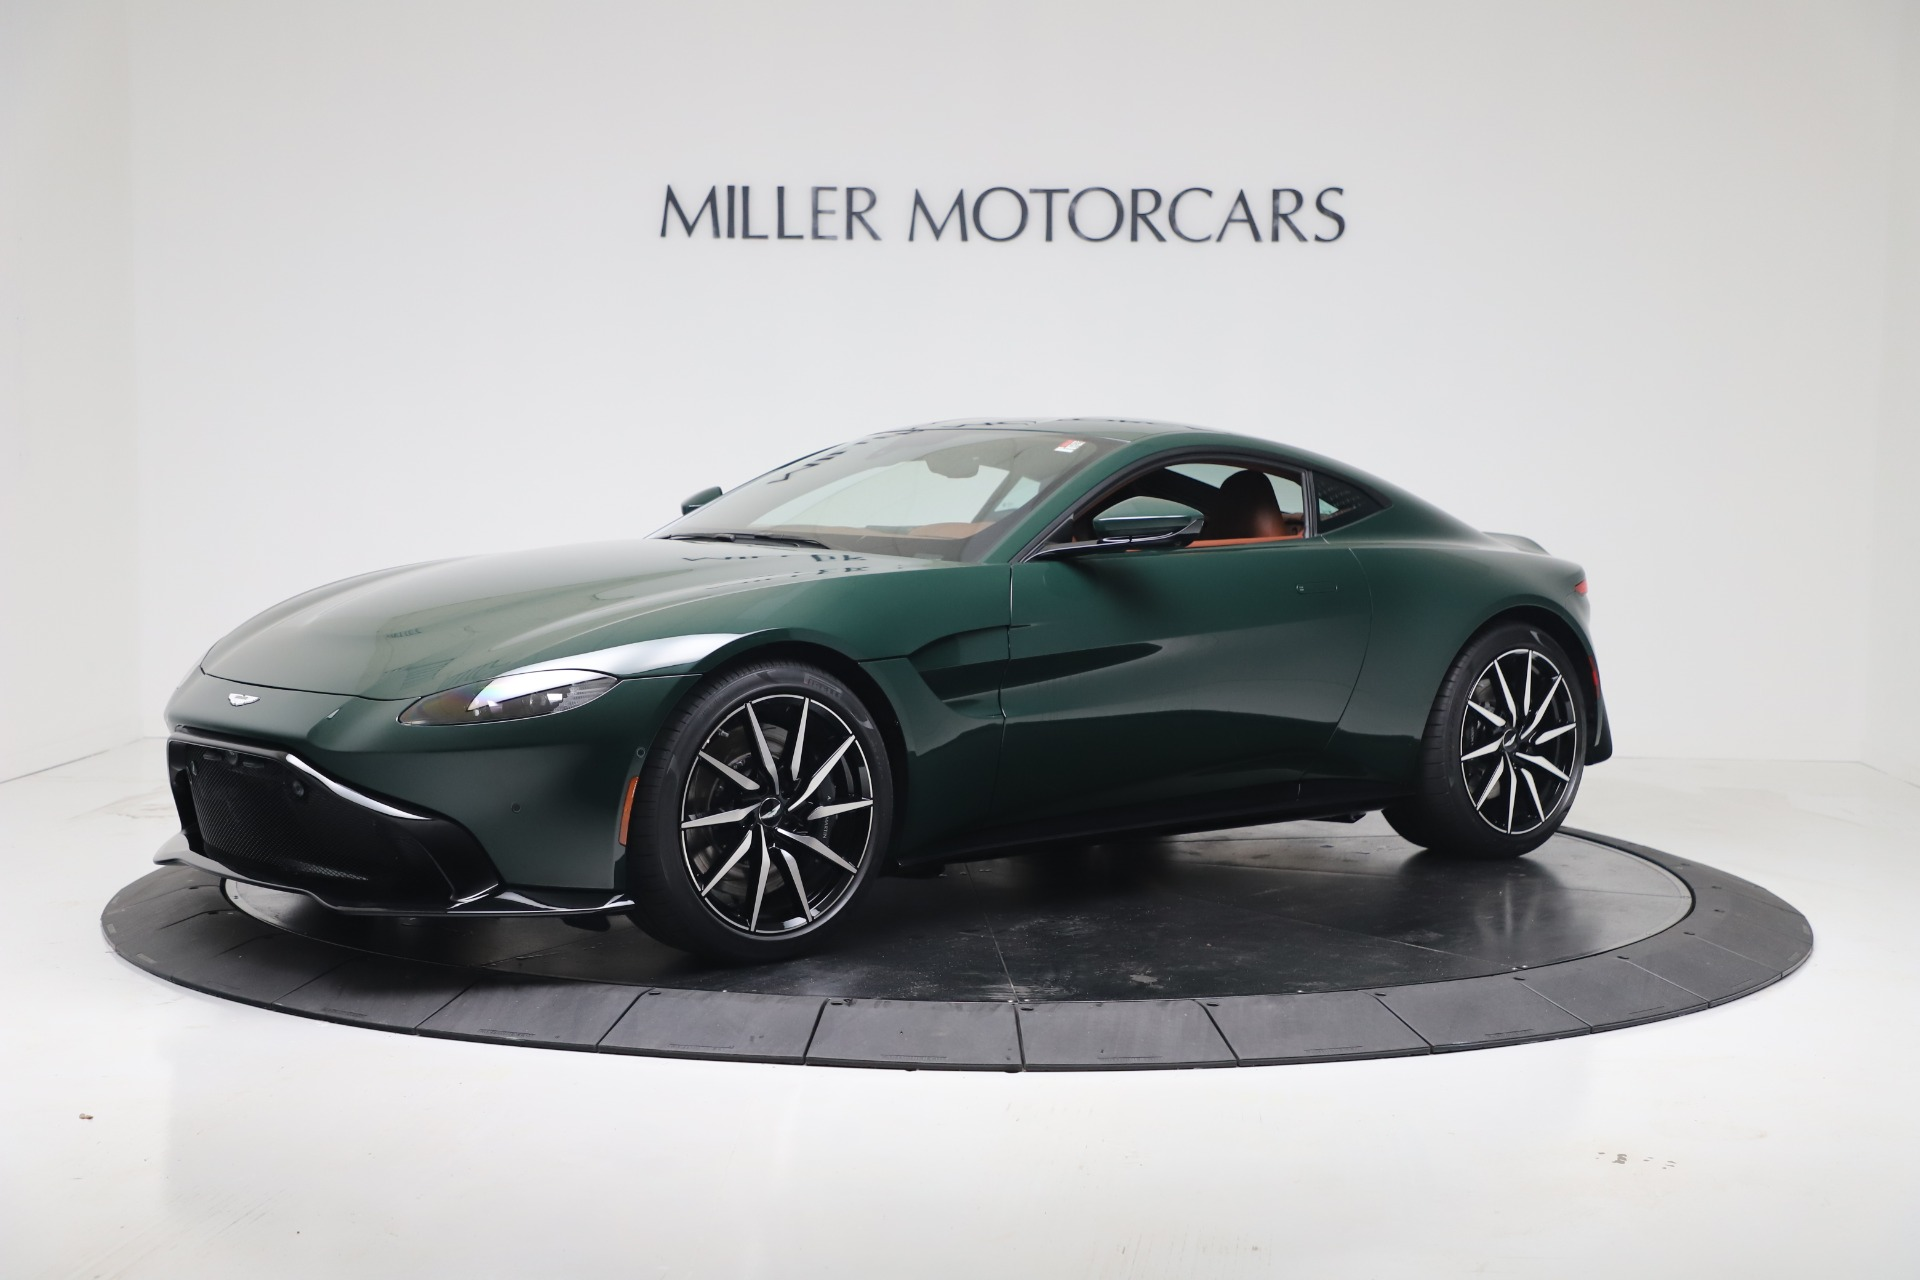 New 2020 Aston Martin Vantage V8 For Sale In Westport, CT 3483_main